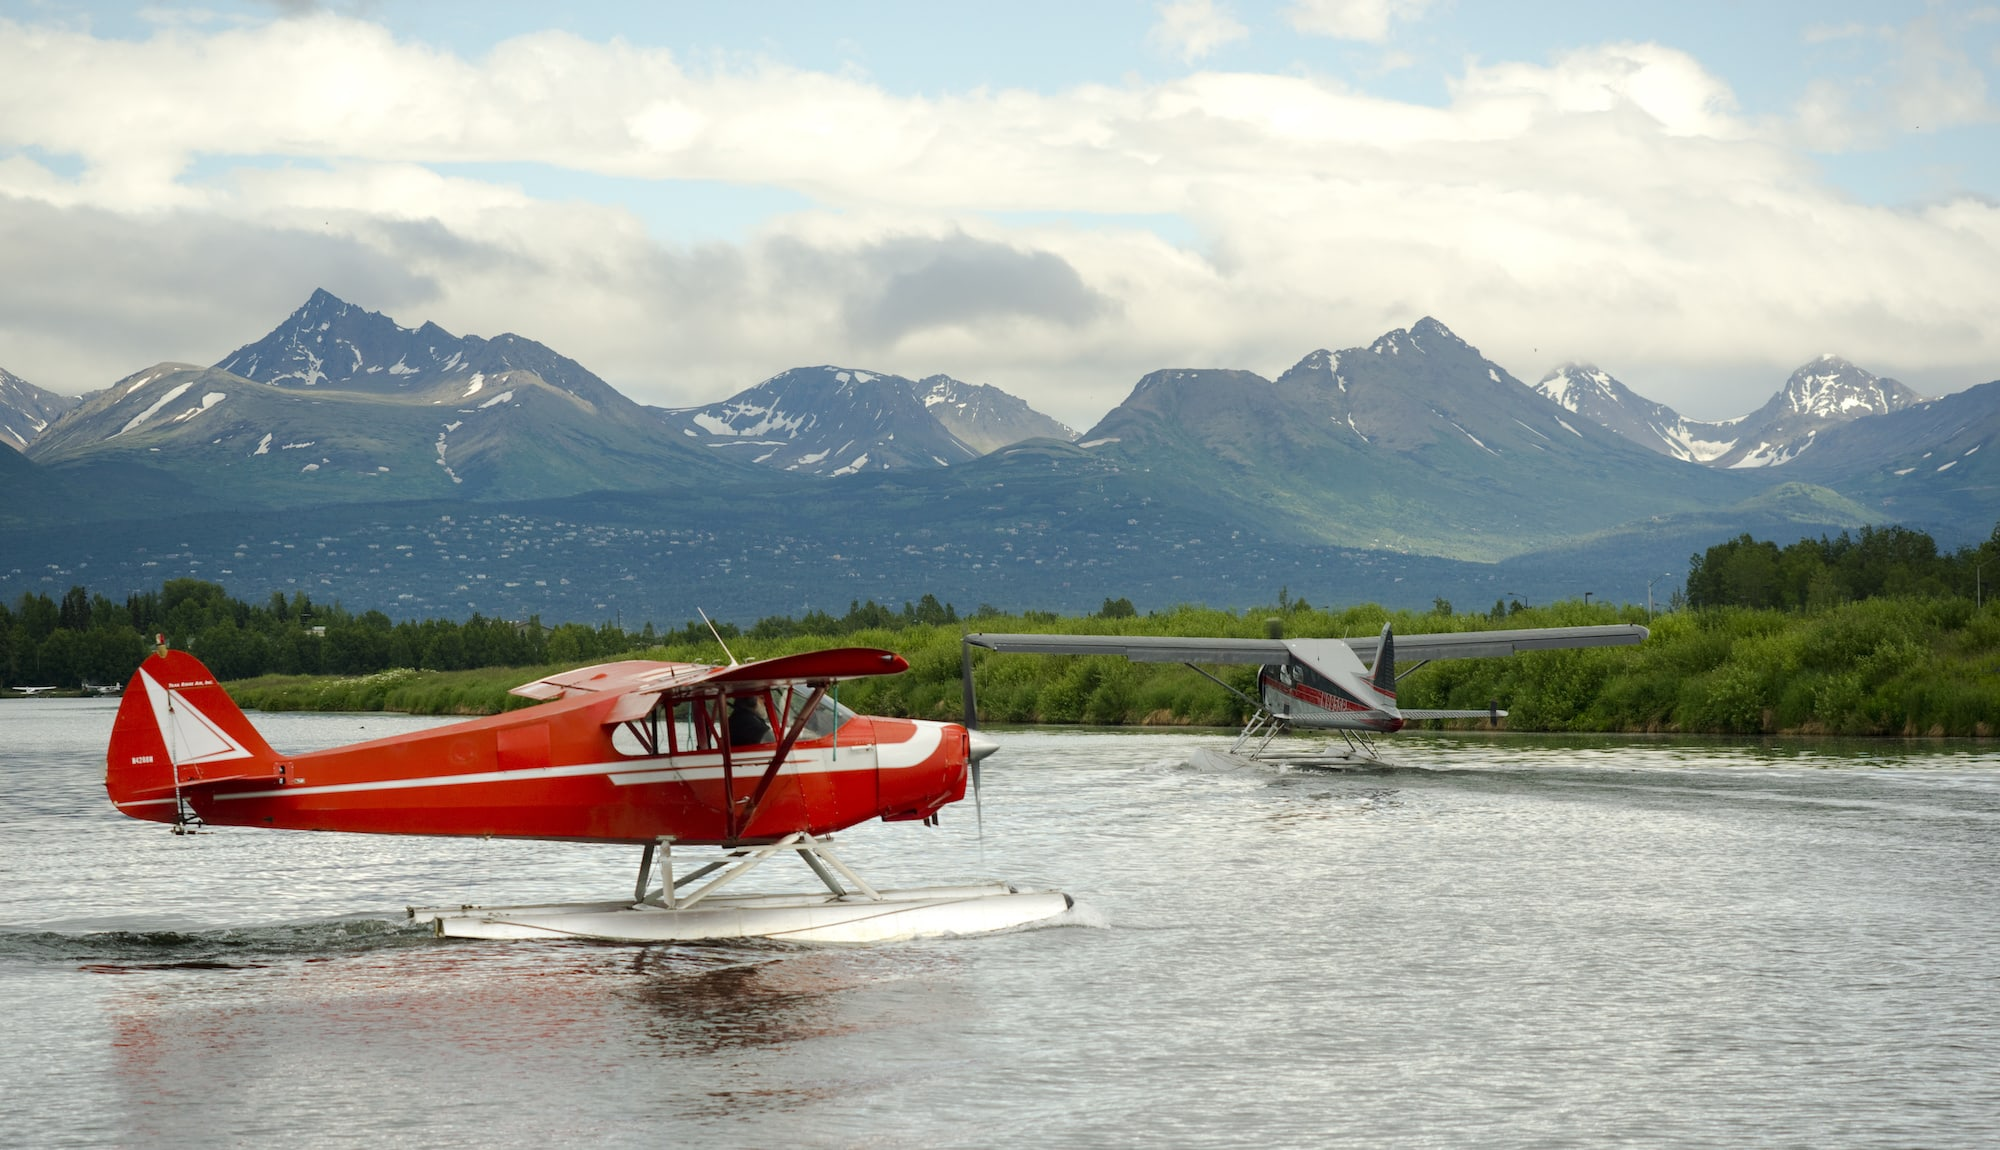 Visit Kenai Fjords & Denali National Park as well as the towns of Seward, Homer, & Anchorage in 8 days on this 1,500-mile Alaska road trip itinerary.